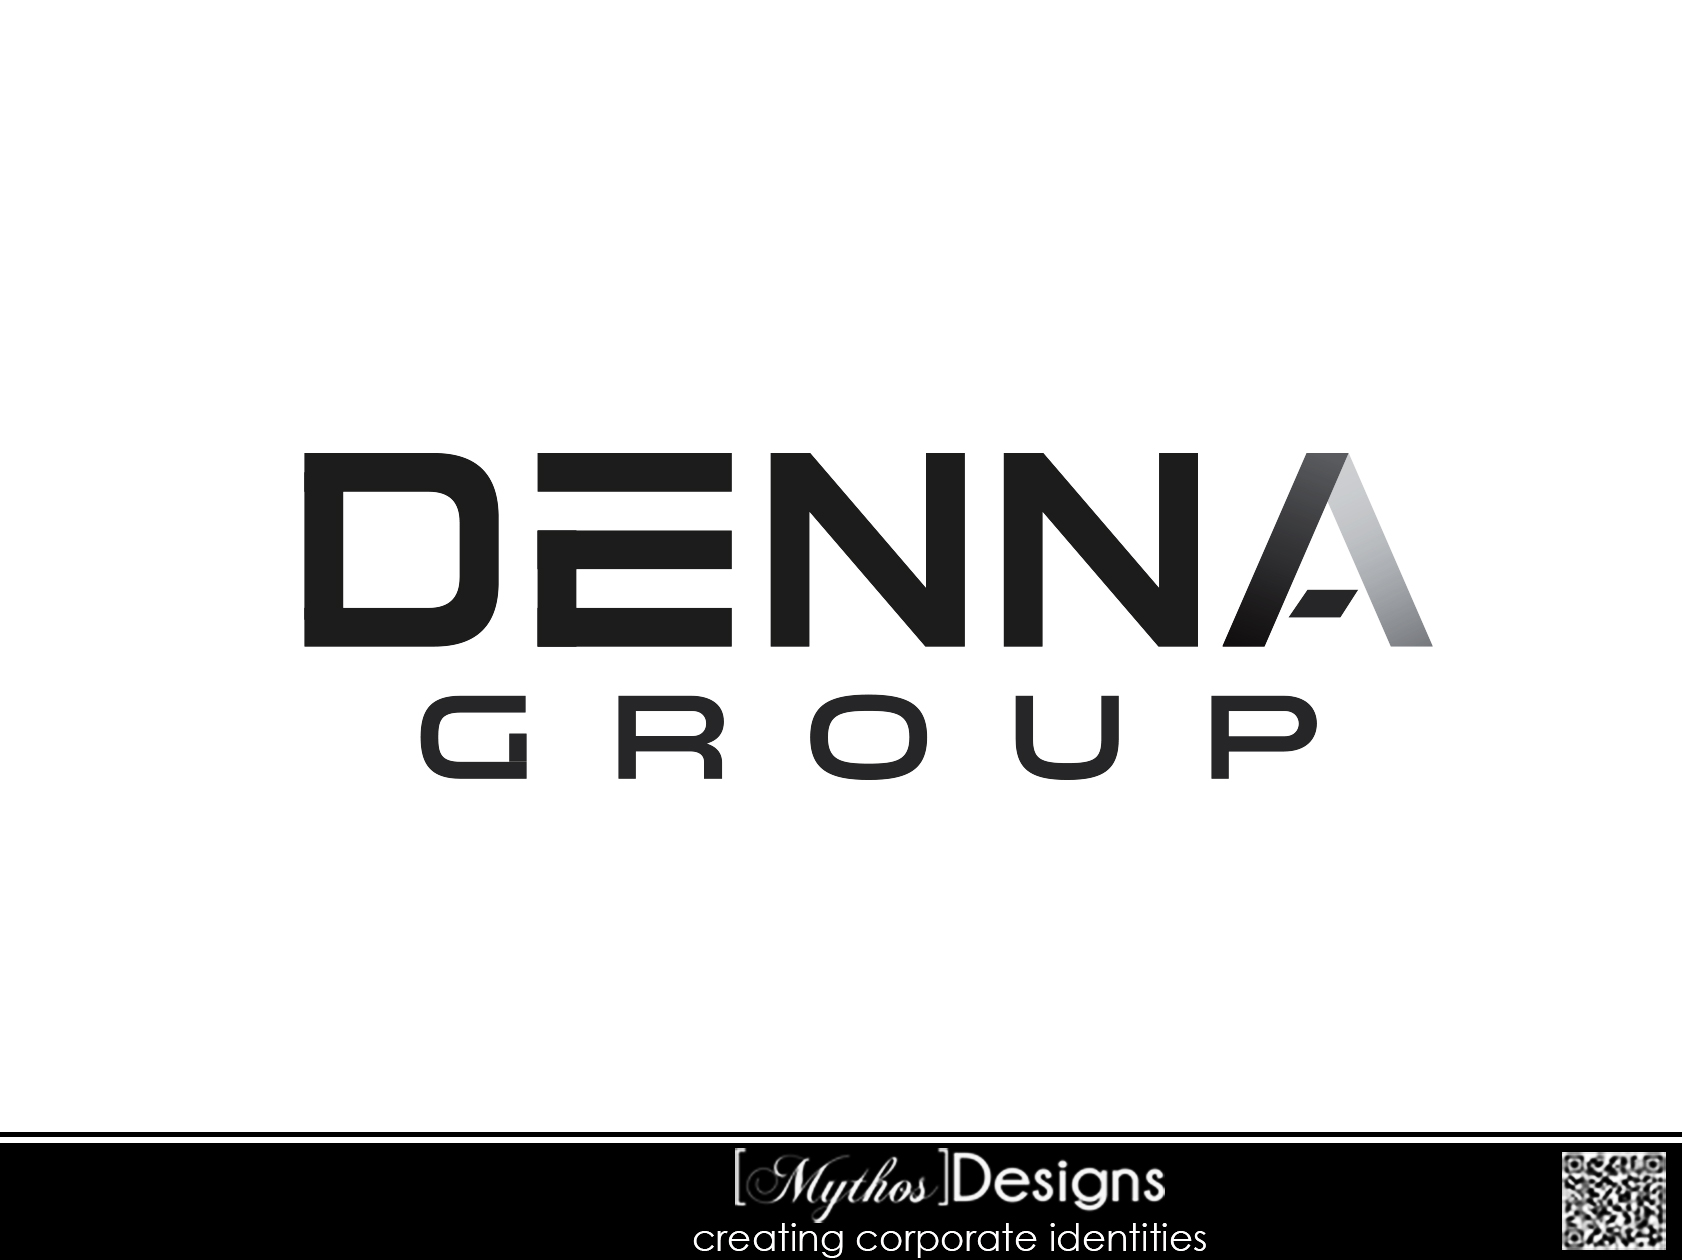 Logo Design by Mythos Designs - Entry No. 155 in the Logo Design Contest Denna Group Logo Design.